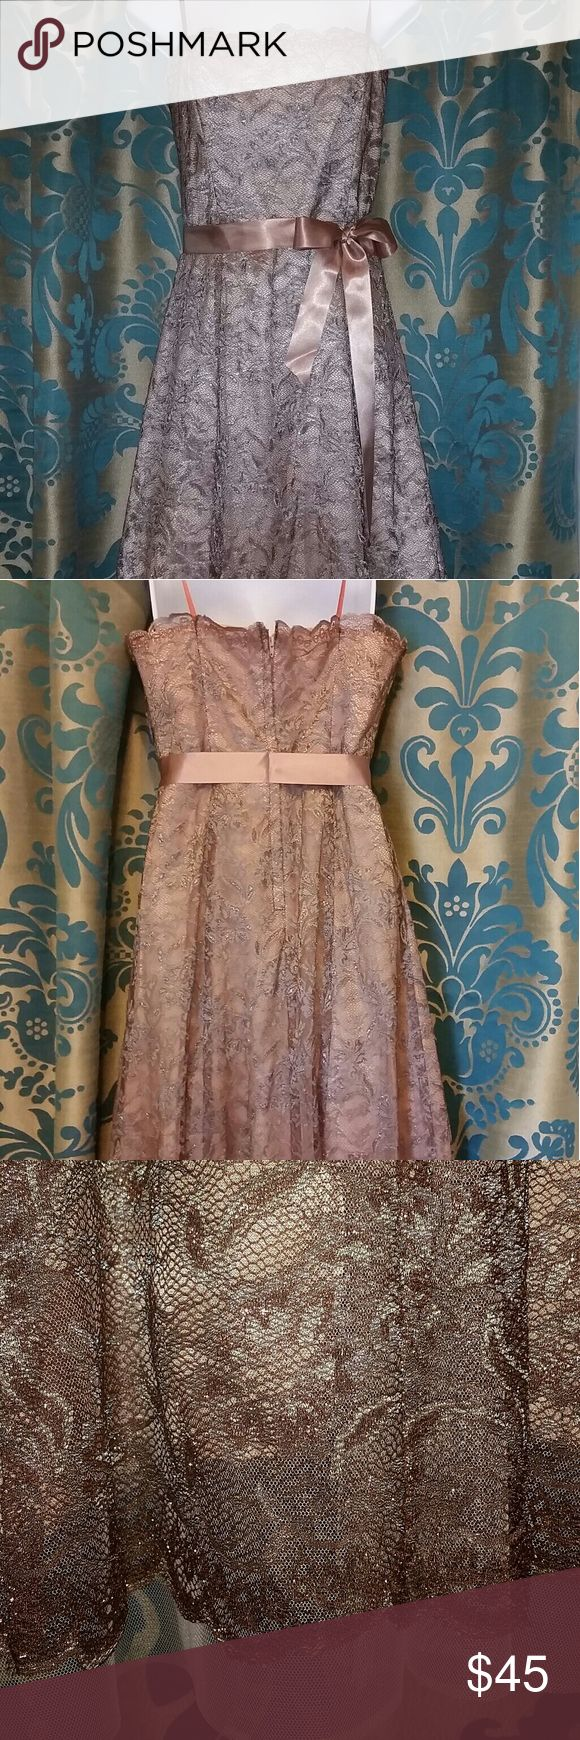 BCBGMaxAzria Strapless Lace Dress Beautiful dark tan, tea length lace dress is complete with attached self tying belt. Fully lined dress with boning in the bust. BCBGMaxAzria Dresses Strapless